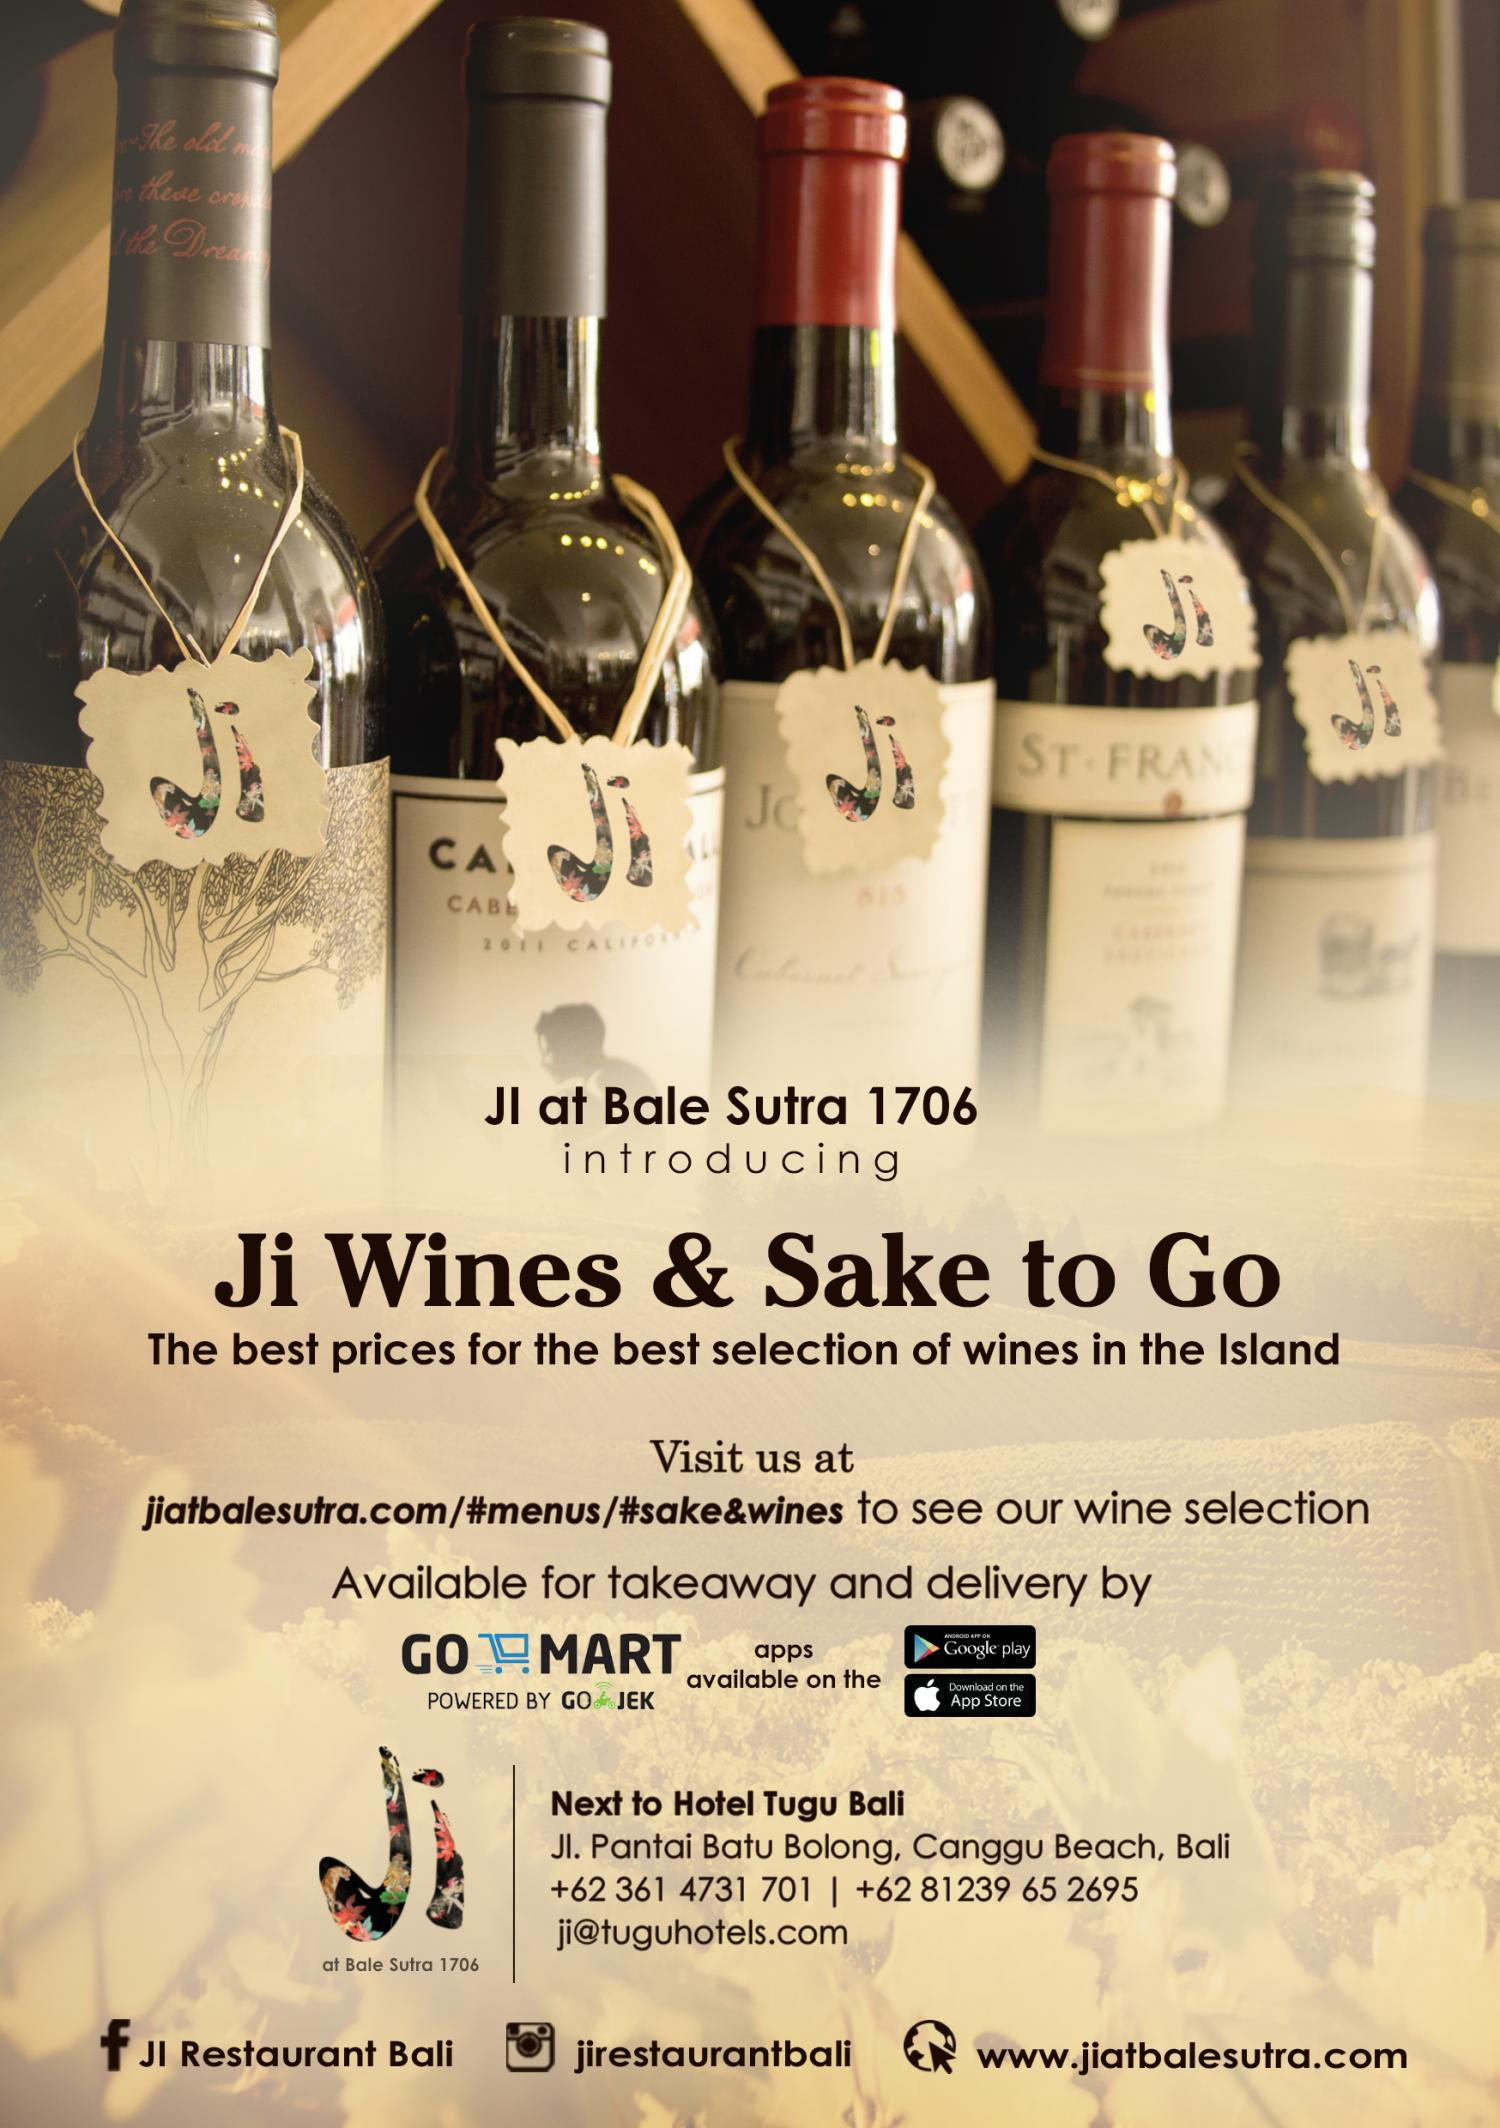 JI at Bale Sutra 1706 introducing Ji Wines & Sake to Go. The best prices for the best selection of wines in the Island